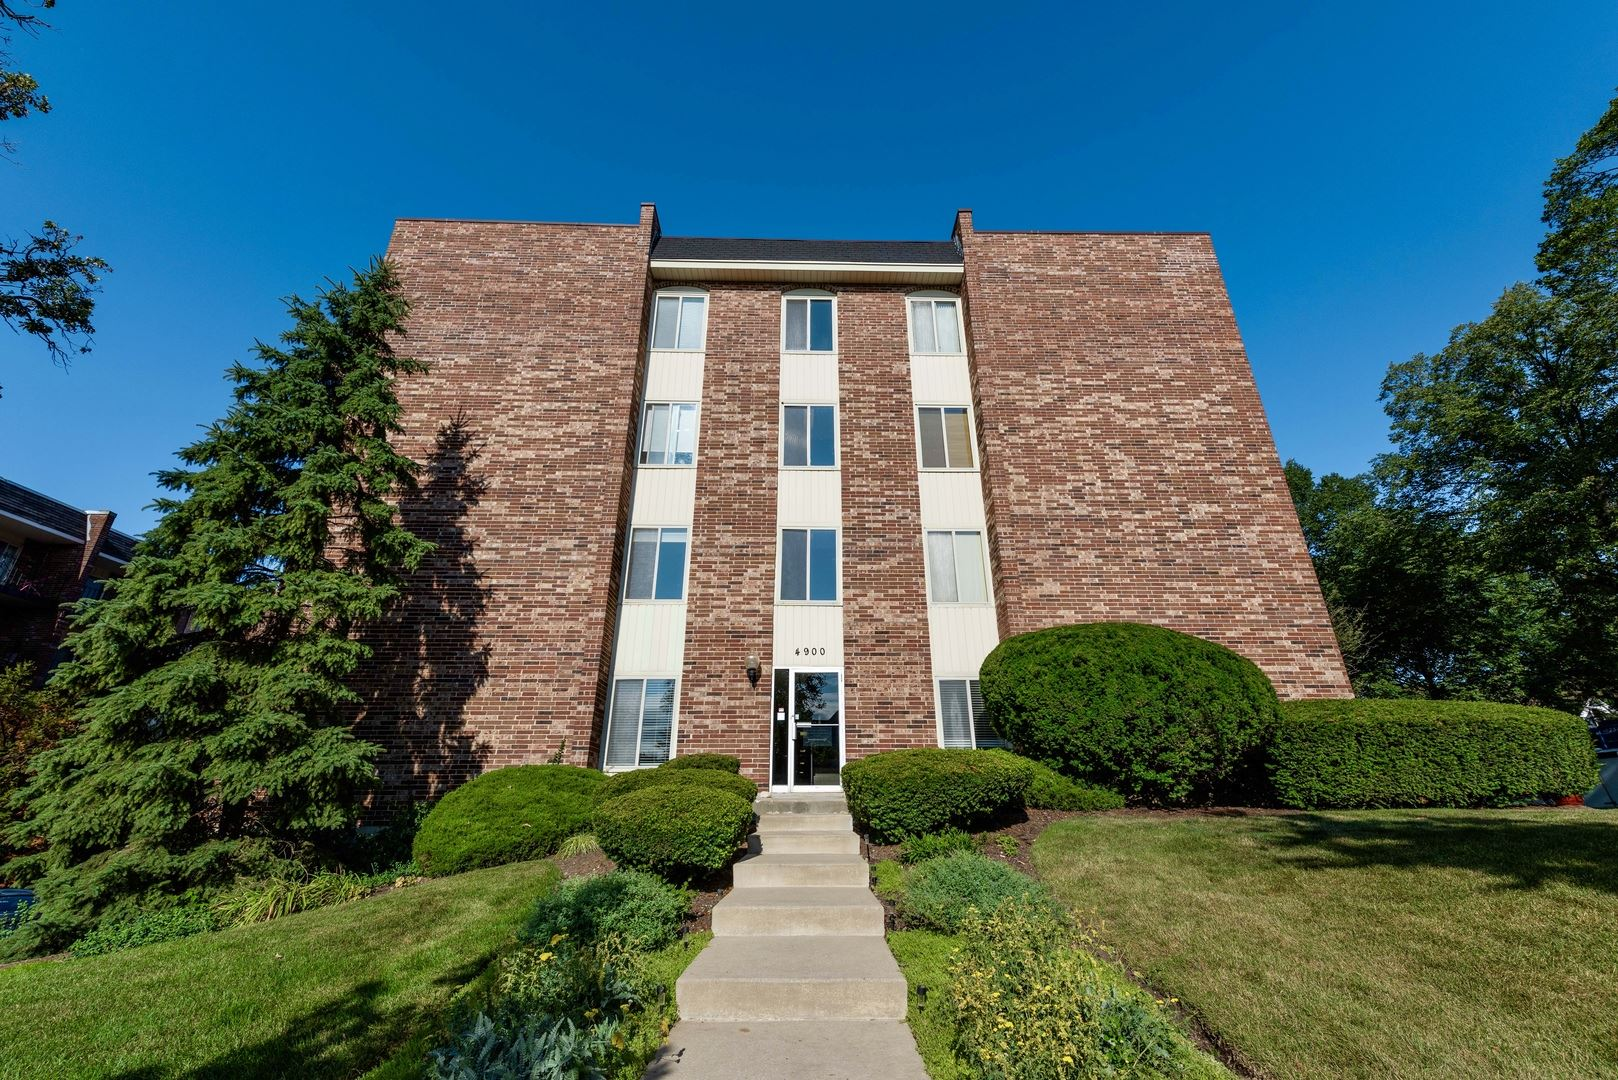 4900 Forest Avenue #103, Downers Grove, IL 60515 - #: 10812296